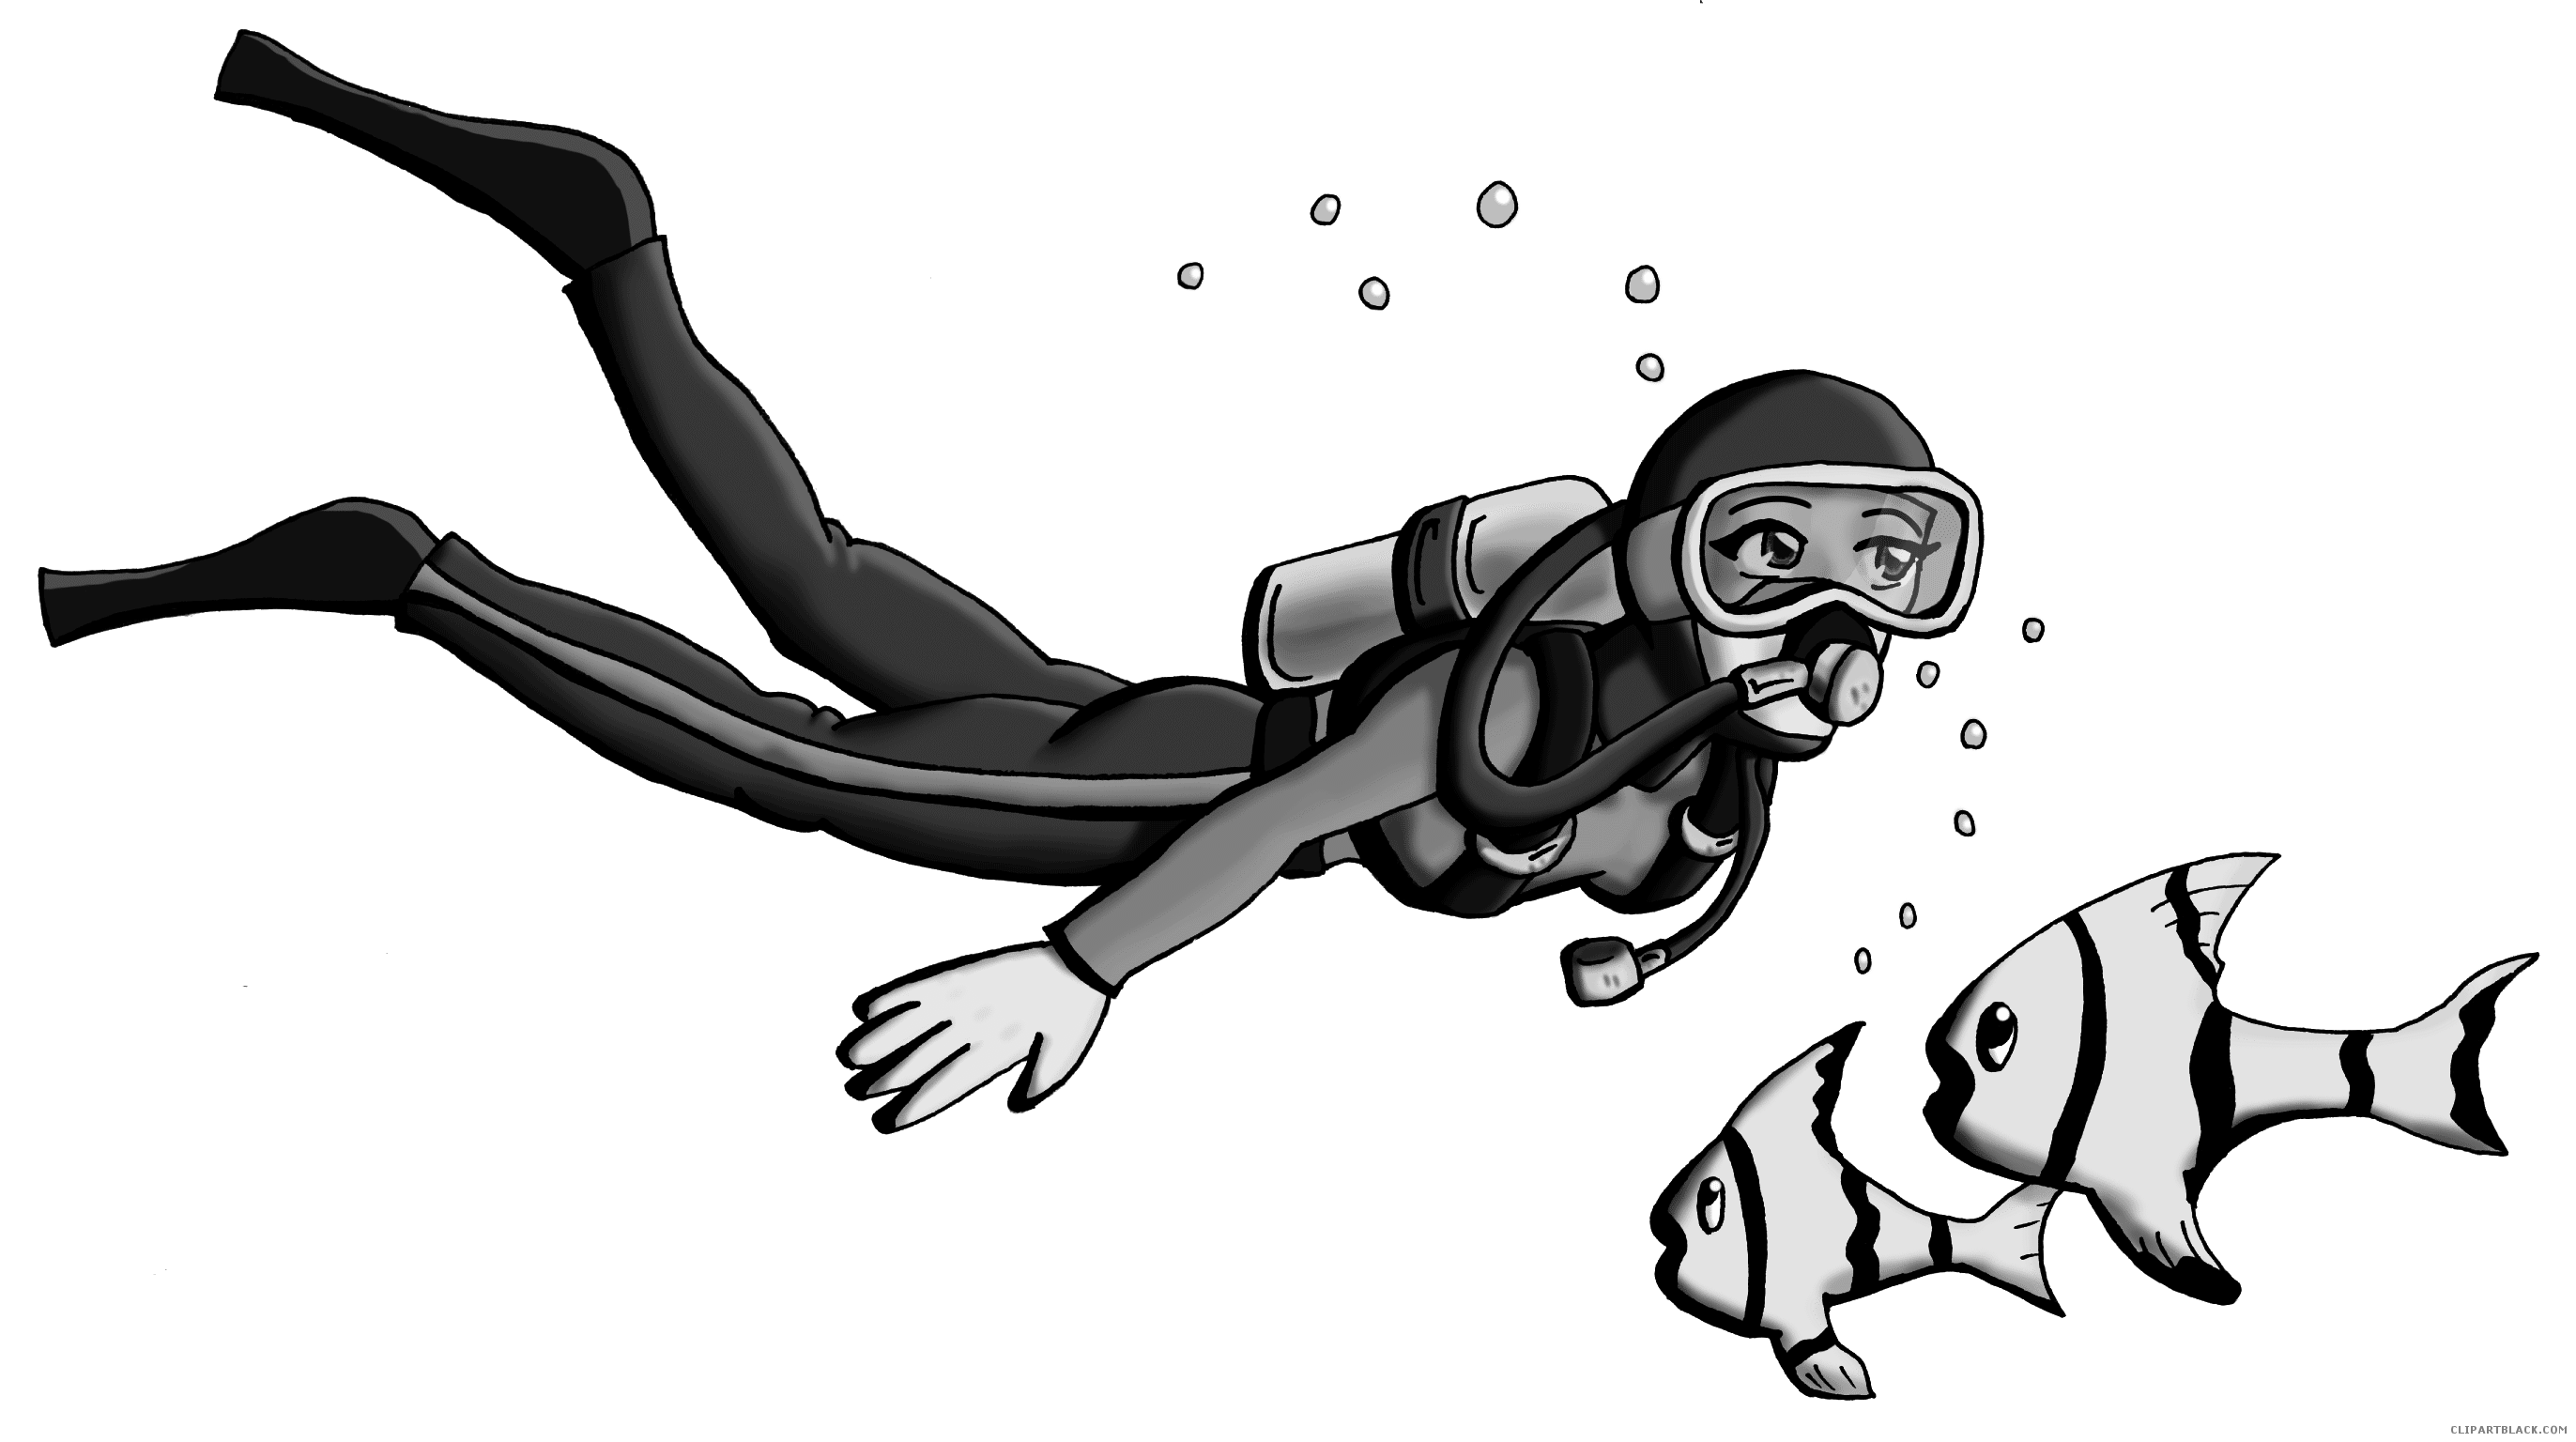 Fish with bubbles clipart black and white picture freeuse library Fish - Page 16 of 56 - ClipartBlack.com picture freeuse library